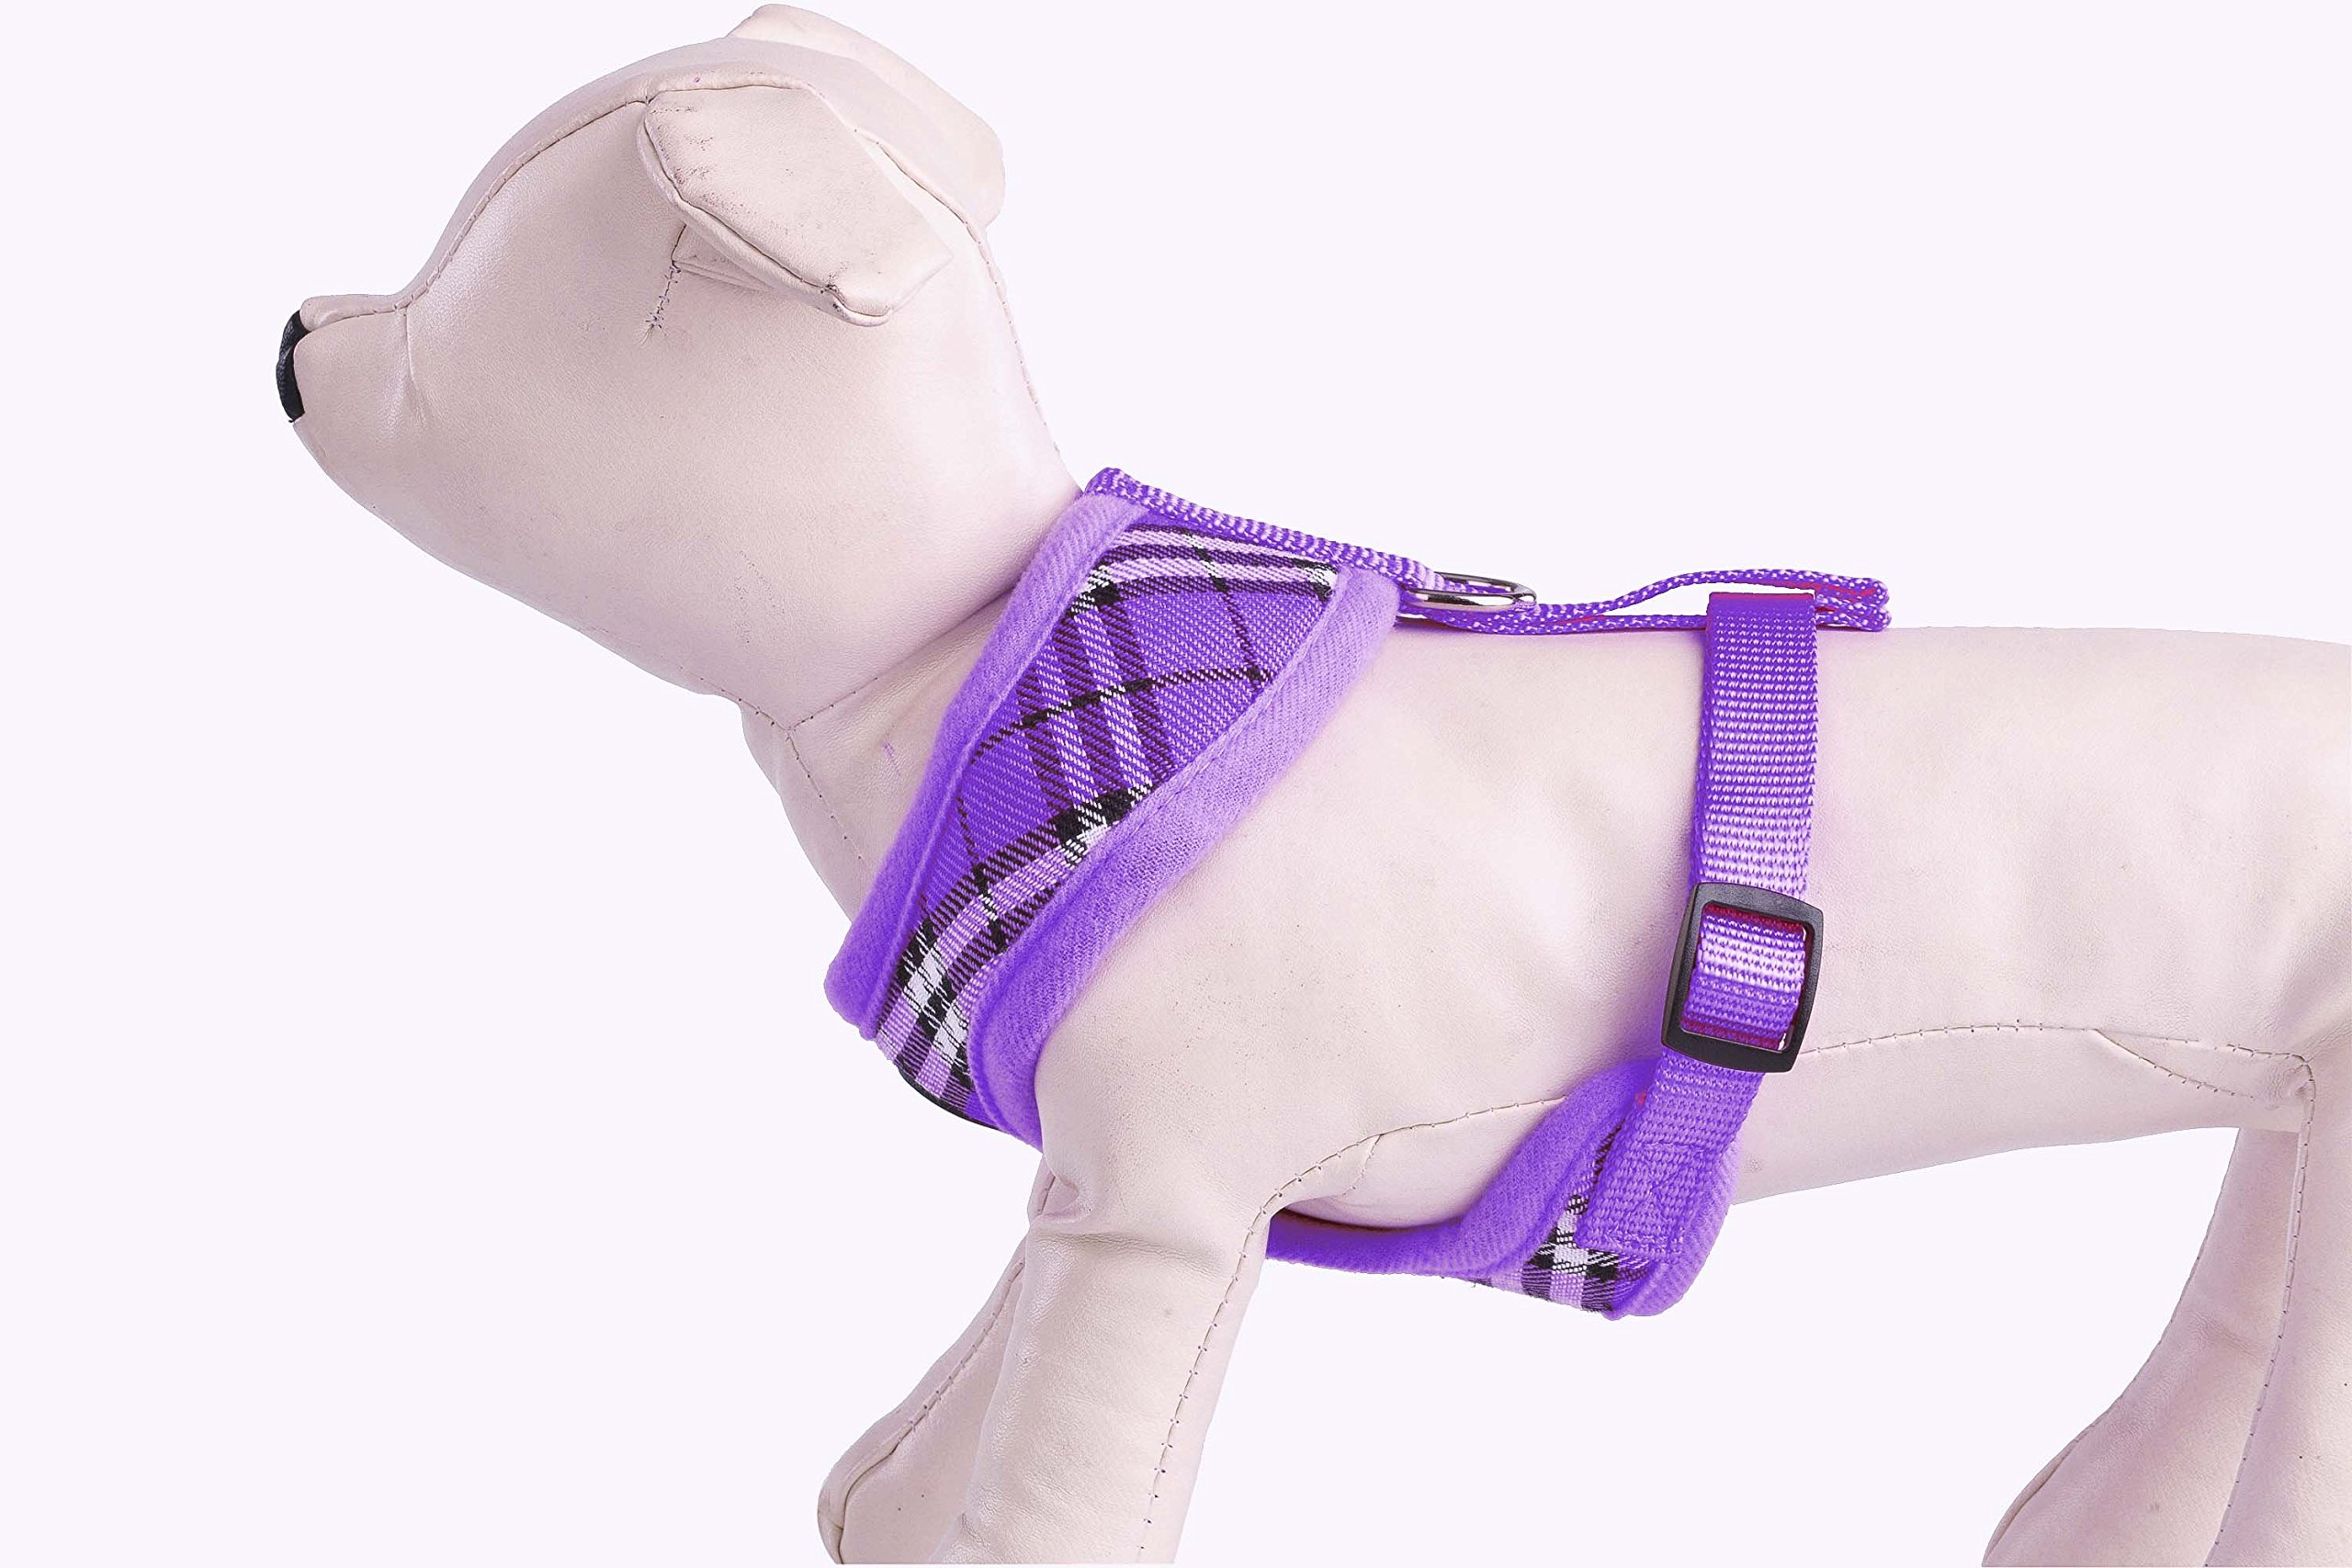 PUPTECK Soft Mesh Dog Harness Pet Puppy Comfort Padded Vest No Pull Harnesses, Purple Medium by PUPTECK (Image #5)